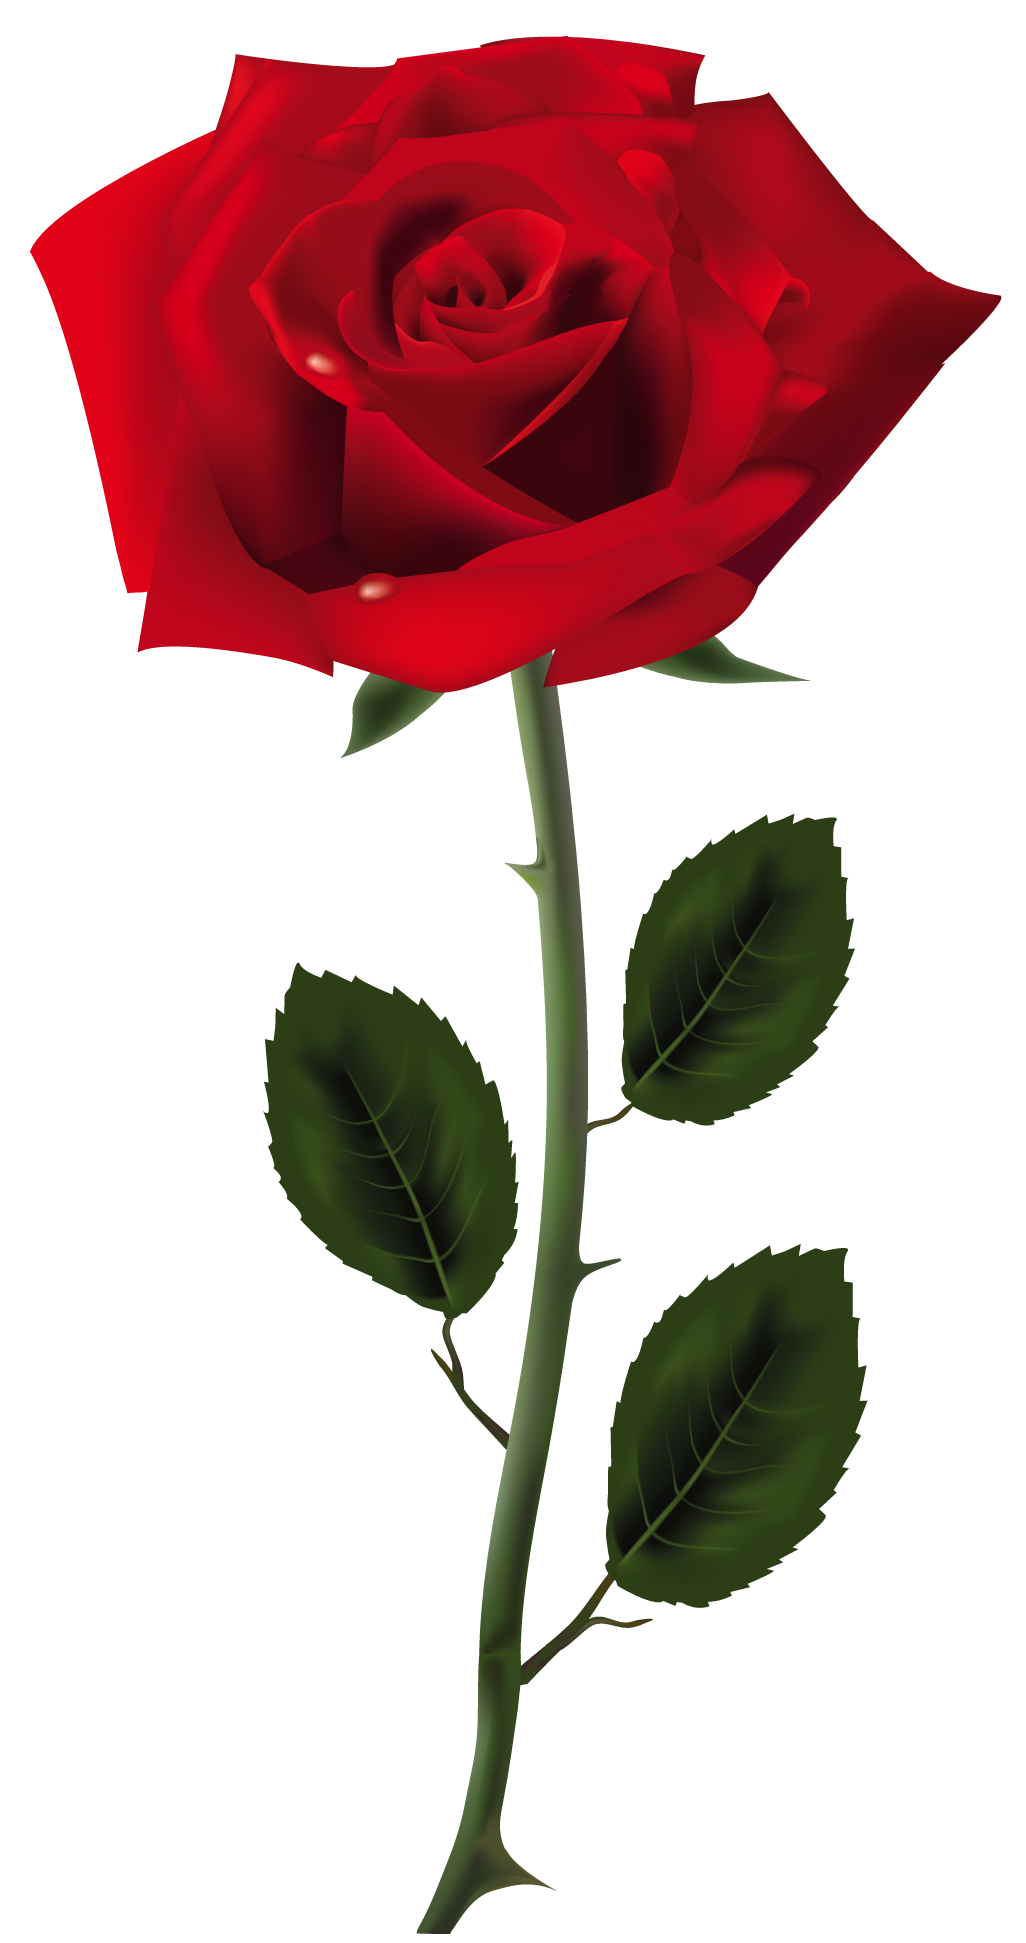 Rose flower png images. Red art picture colors